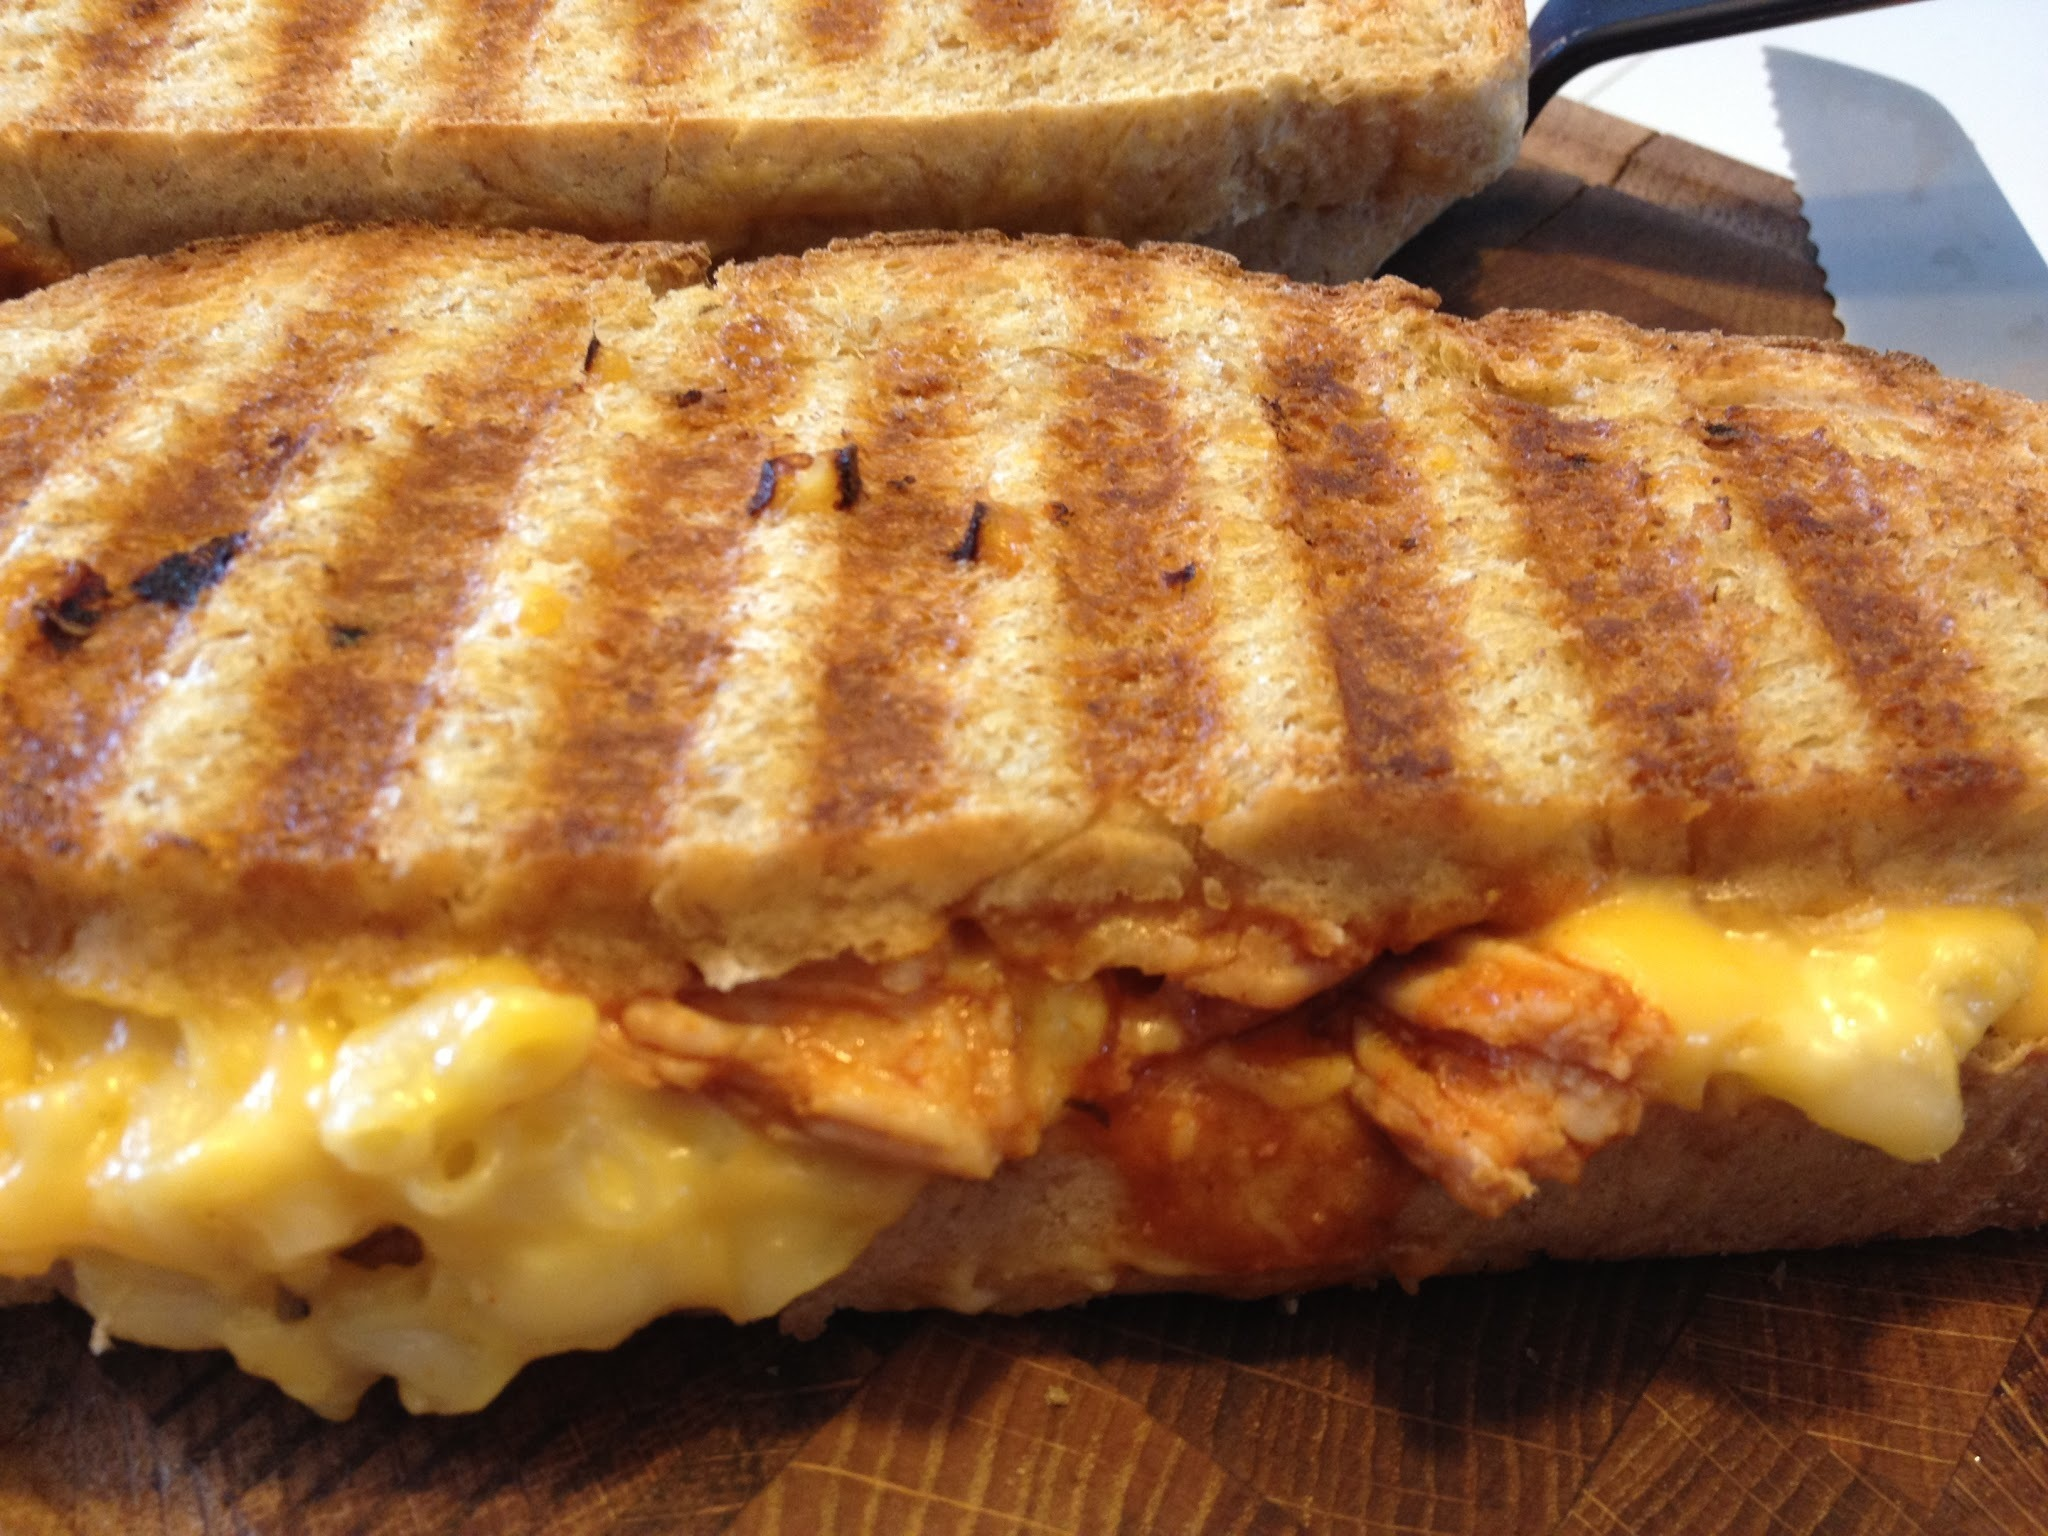 Grilled Mac & Cheese with BBQ Pulled Pork-panini